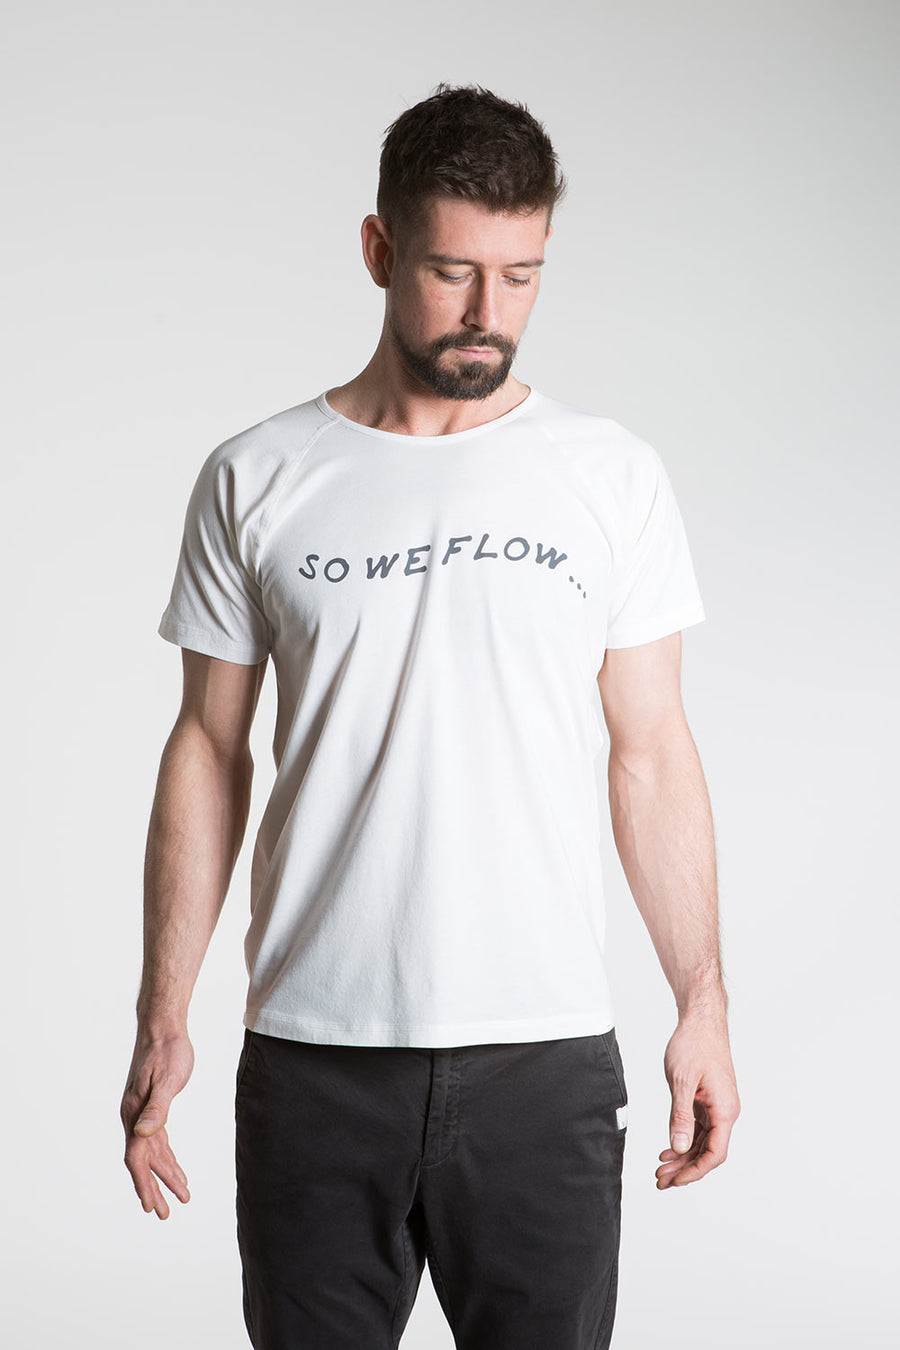 so we flow... 'so we flow...' tee - natural - front